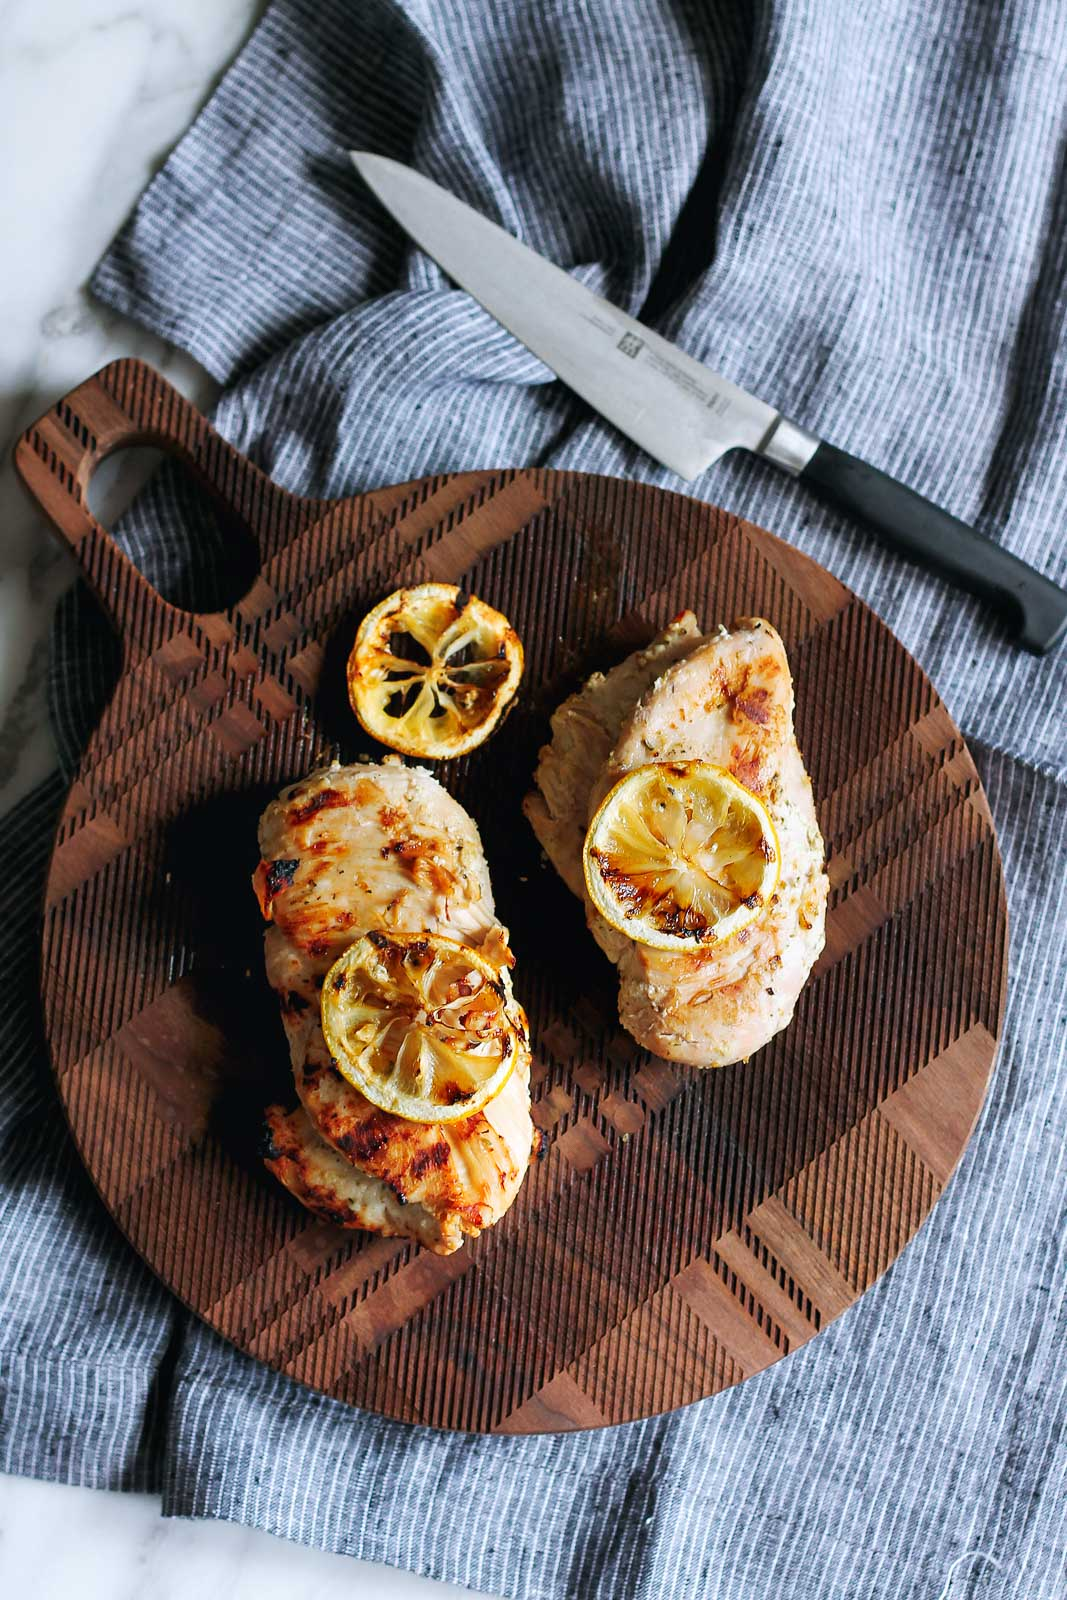 An easy, flavorful lemon and yogurt marinated grilled chicken recipe that keeps the chicken juicy and flavorful! Enjoy over a salad or stuffed in a pita!